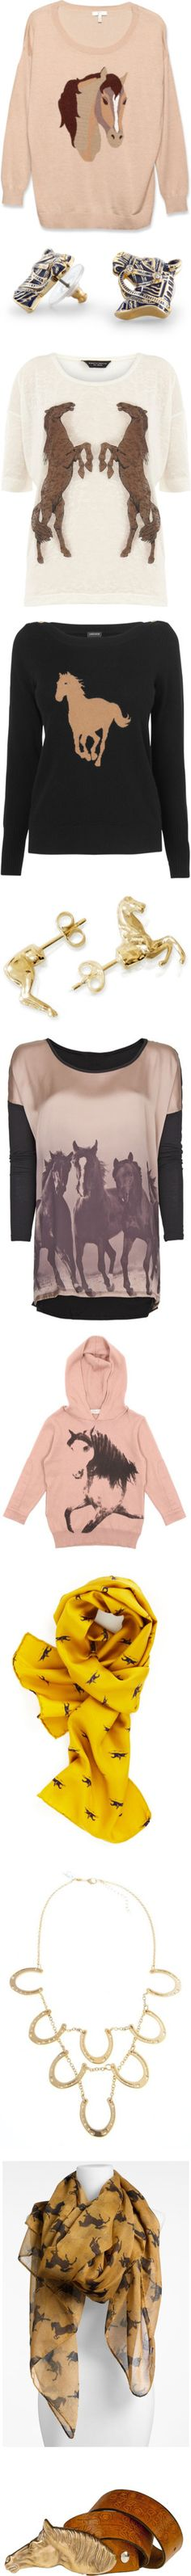 """""""Saddle Up in Style"""" by ashley-rebecca ❤ liked on Polyvore"""